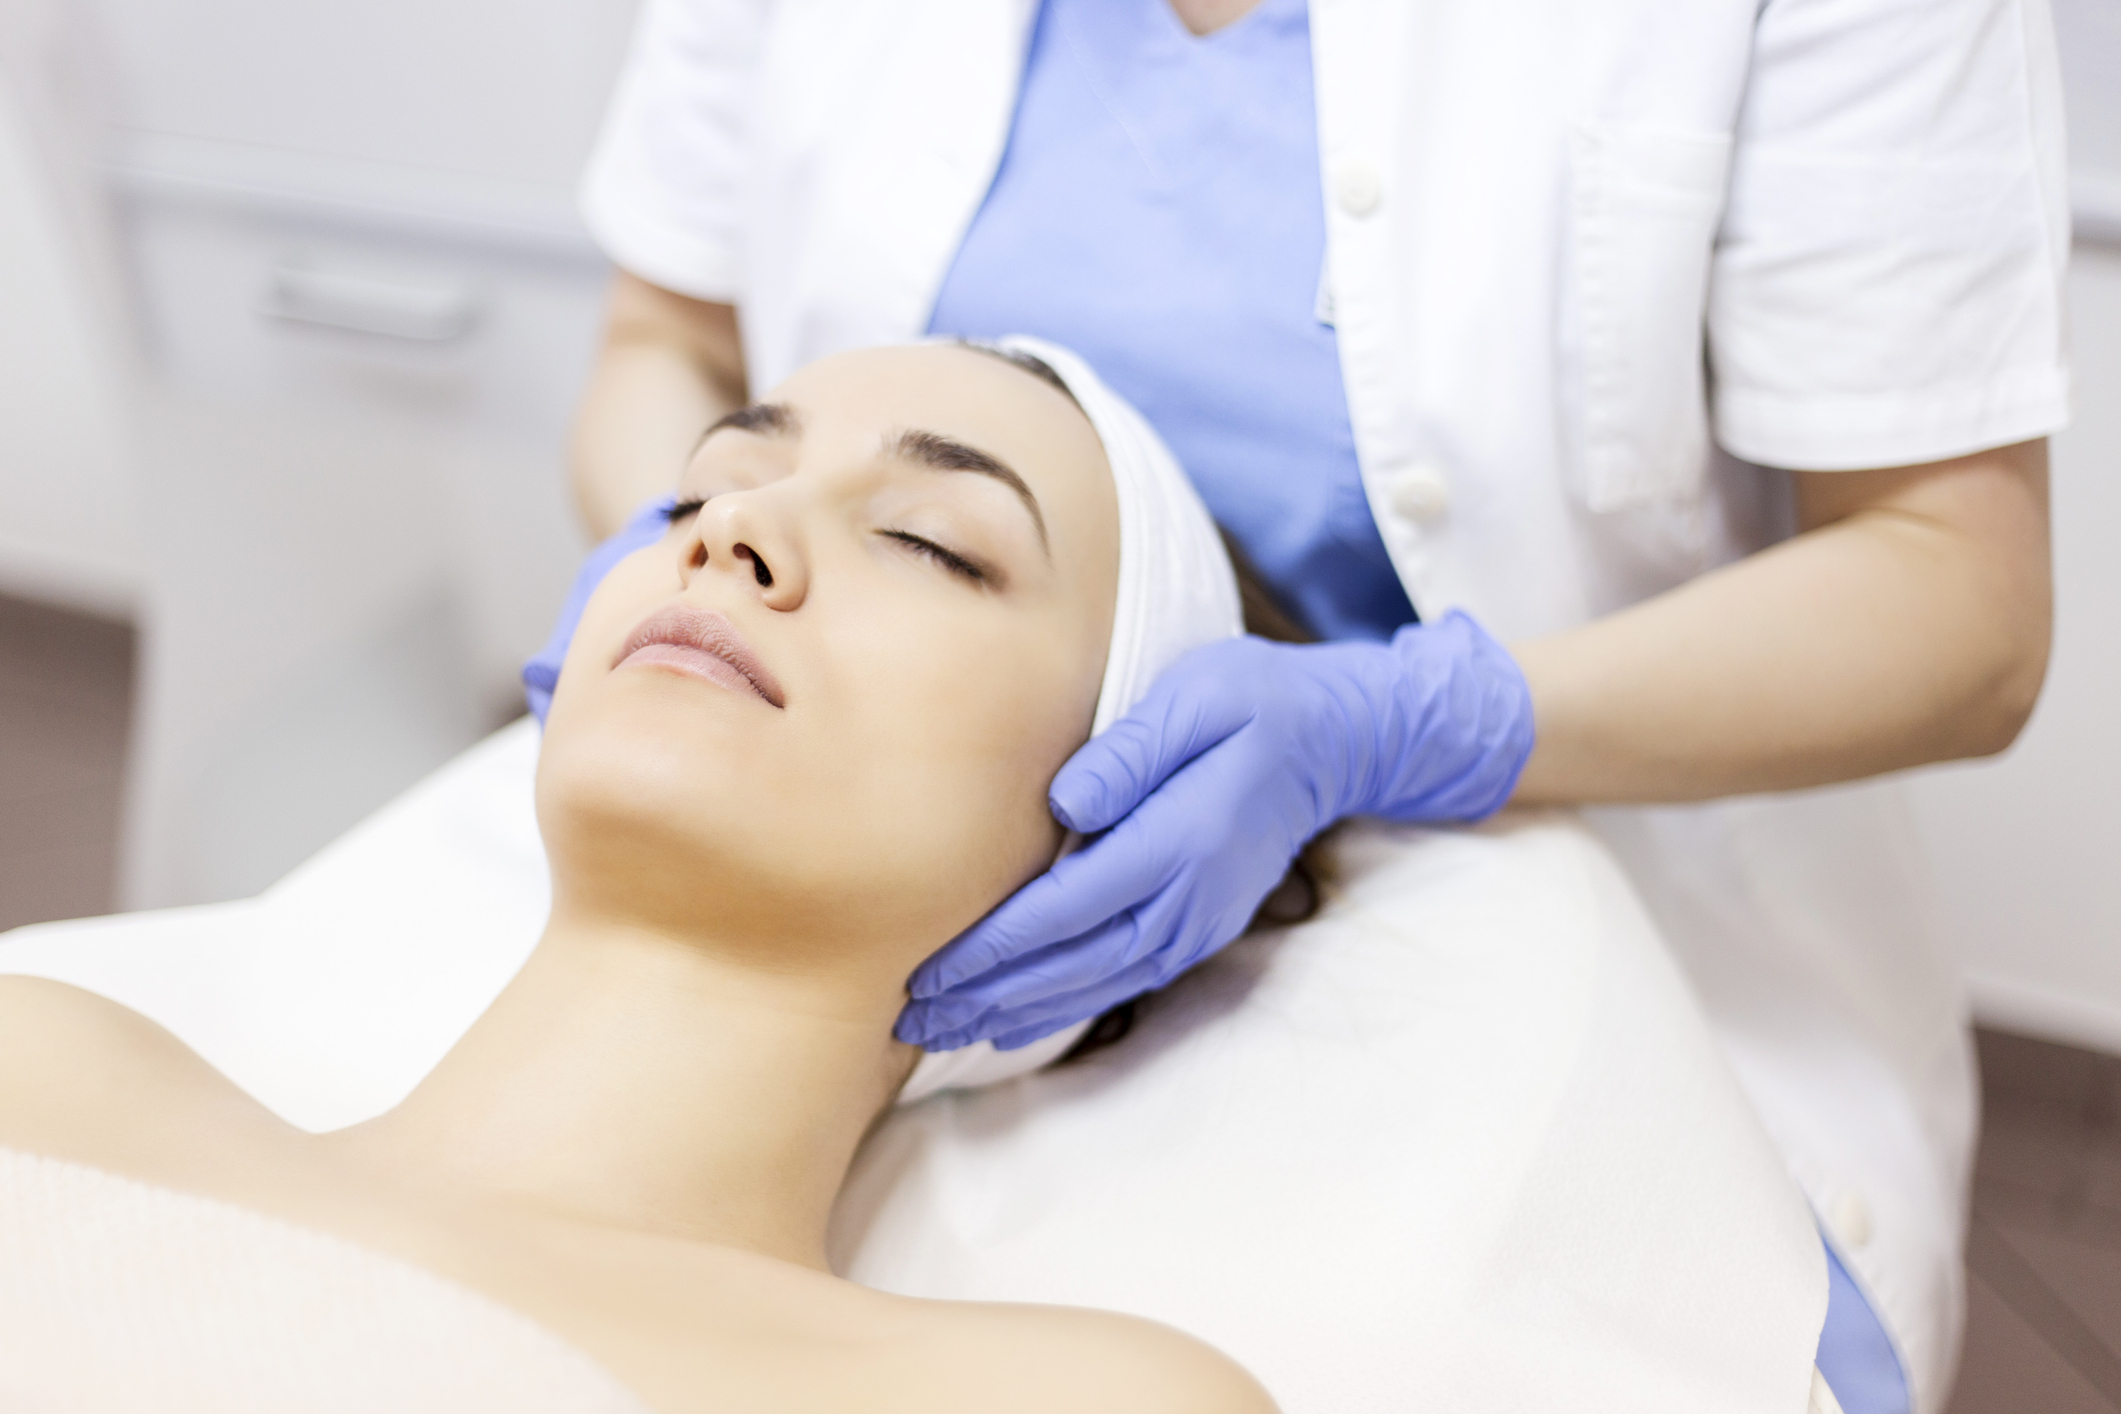 Chemical Peels - Chemical peels are solutions of glycolic, trichloroacetic, salicylic, lactic acid or phenols applied to the skin.